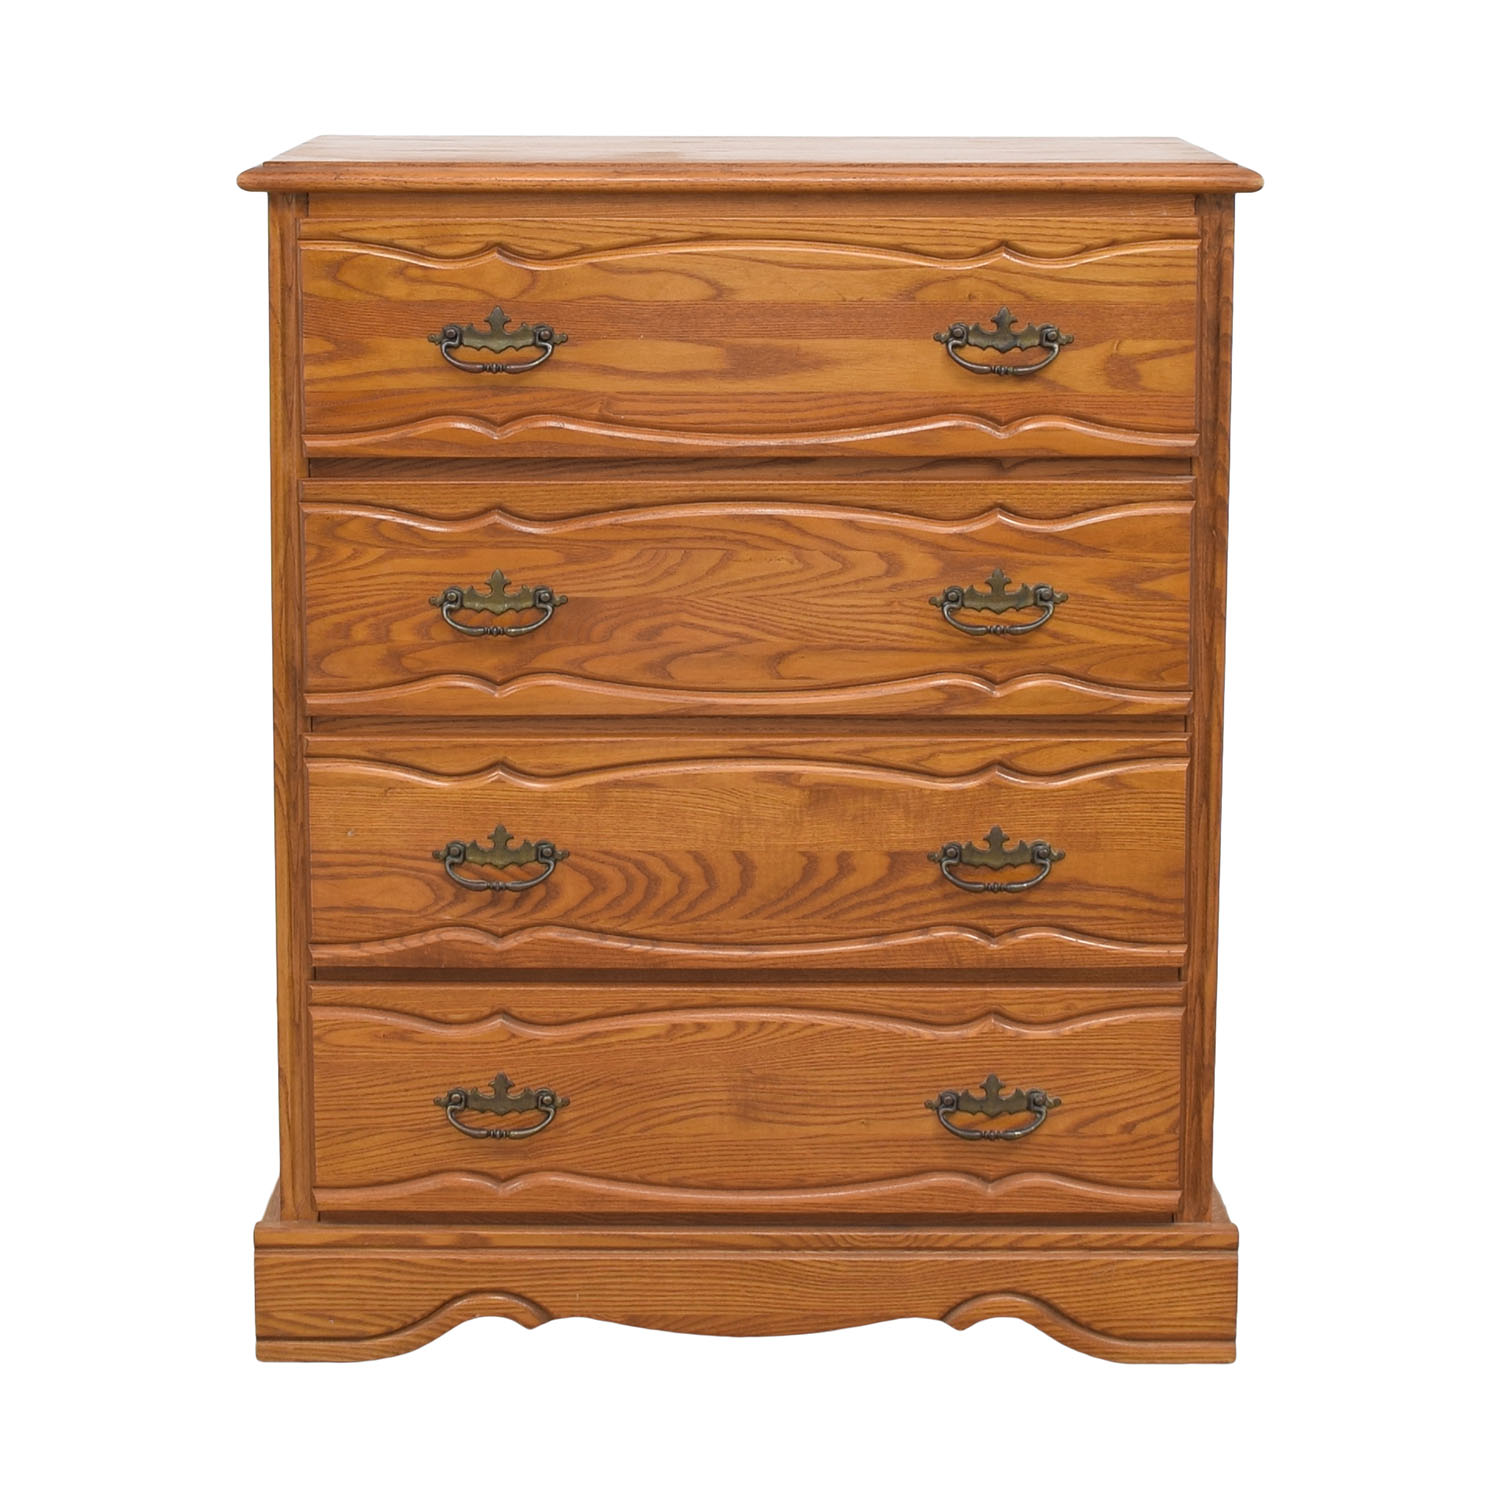 Childcraft Childcraft Classic Four Drawer Dresser nj